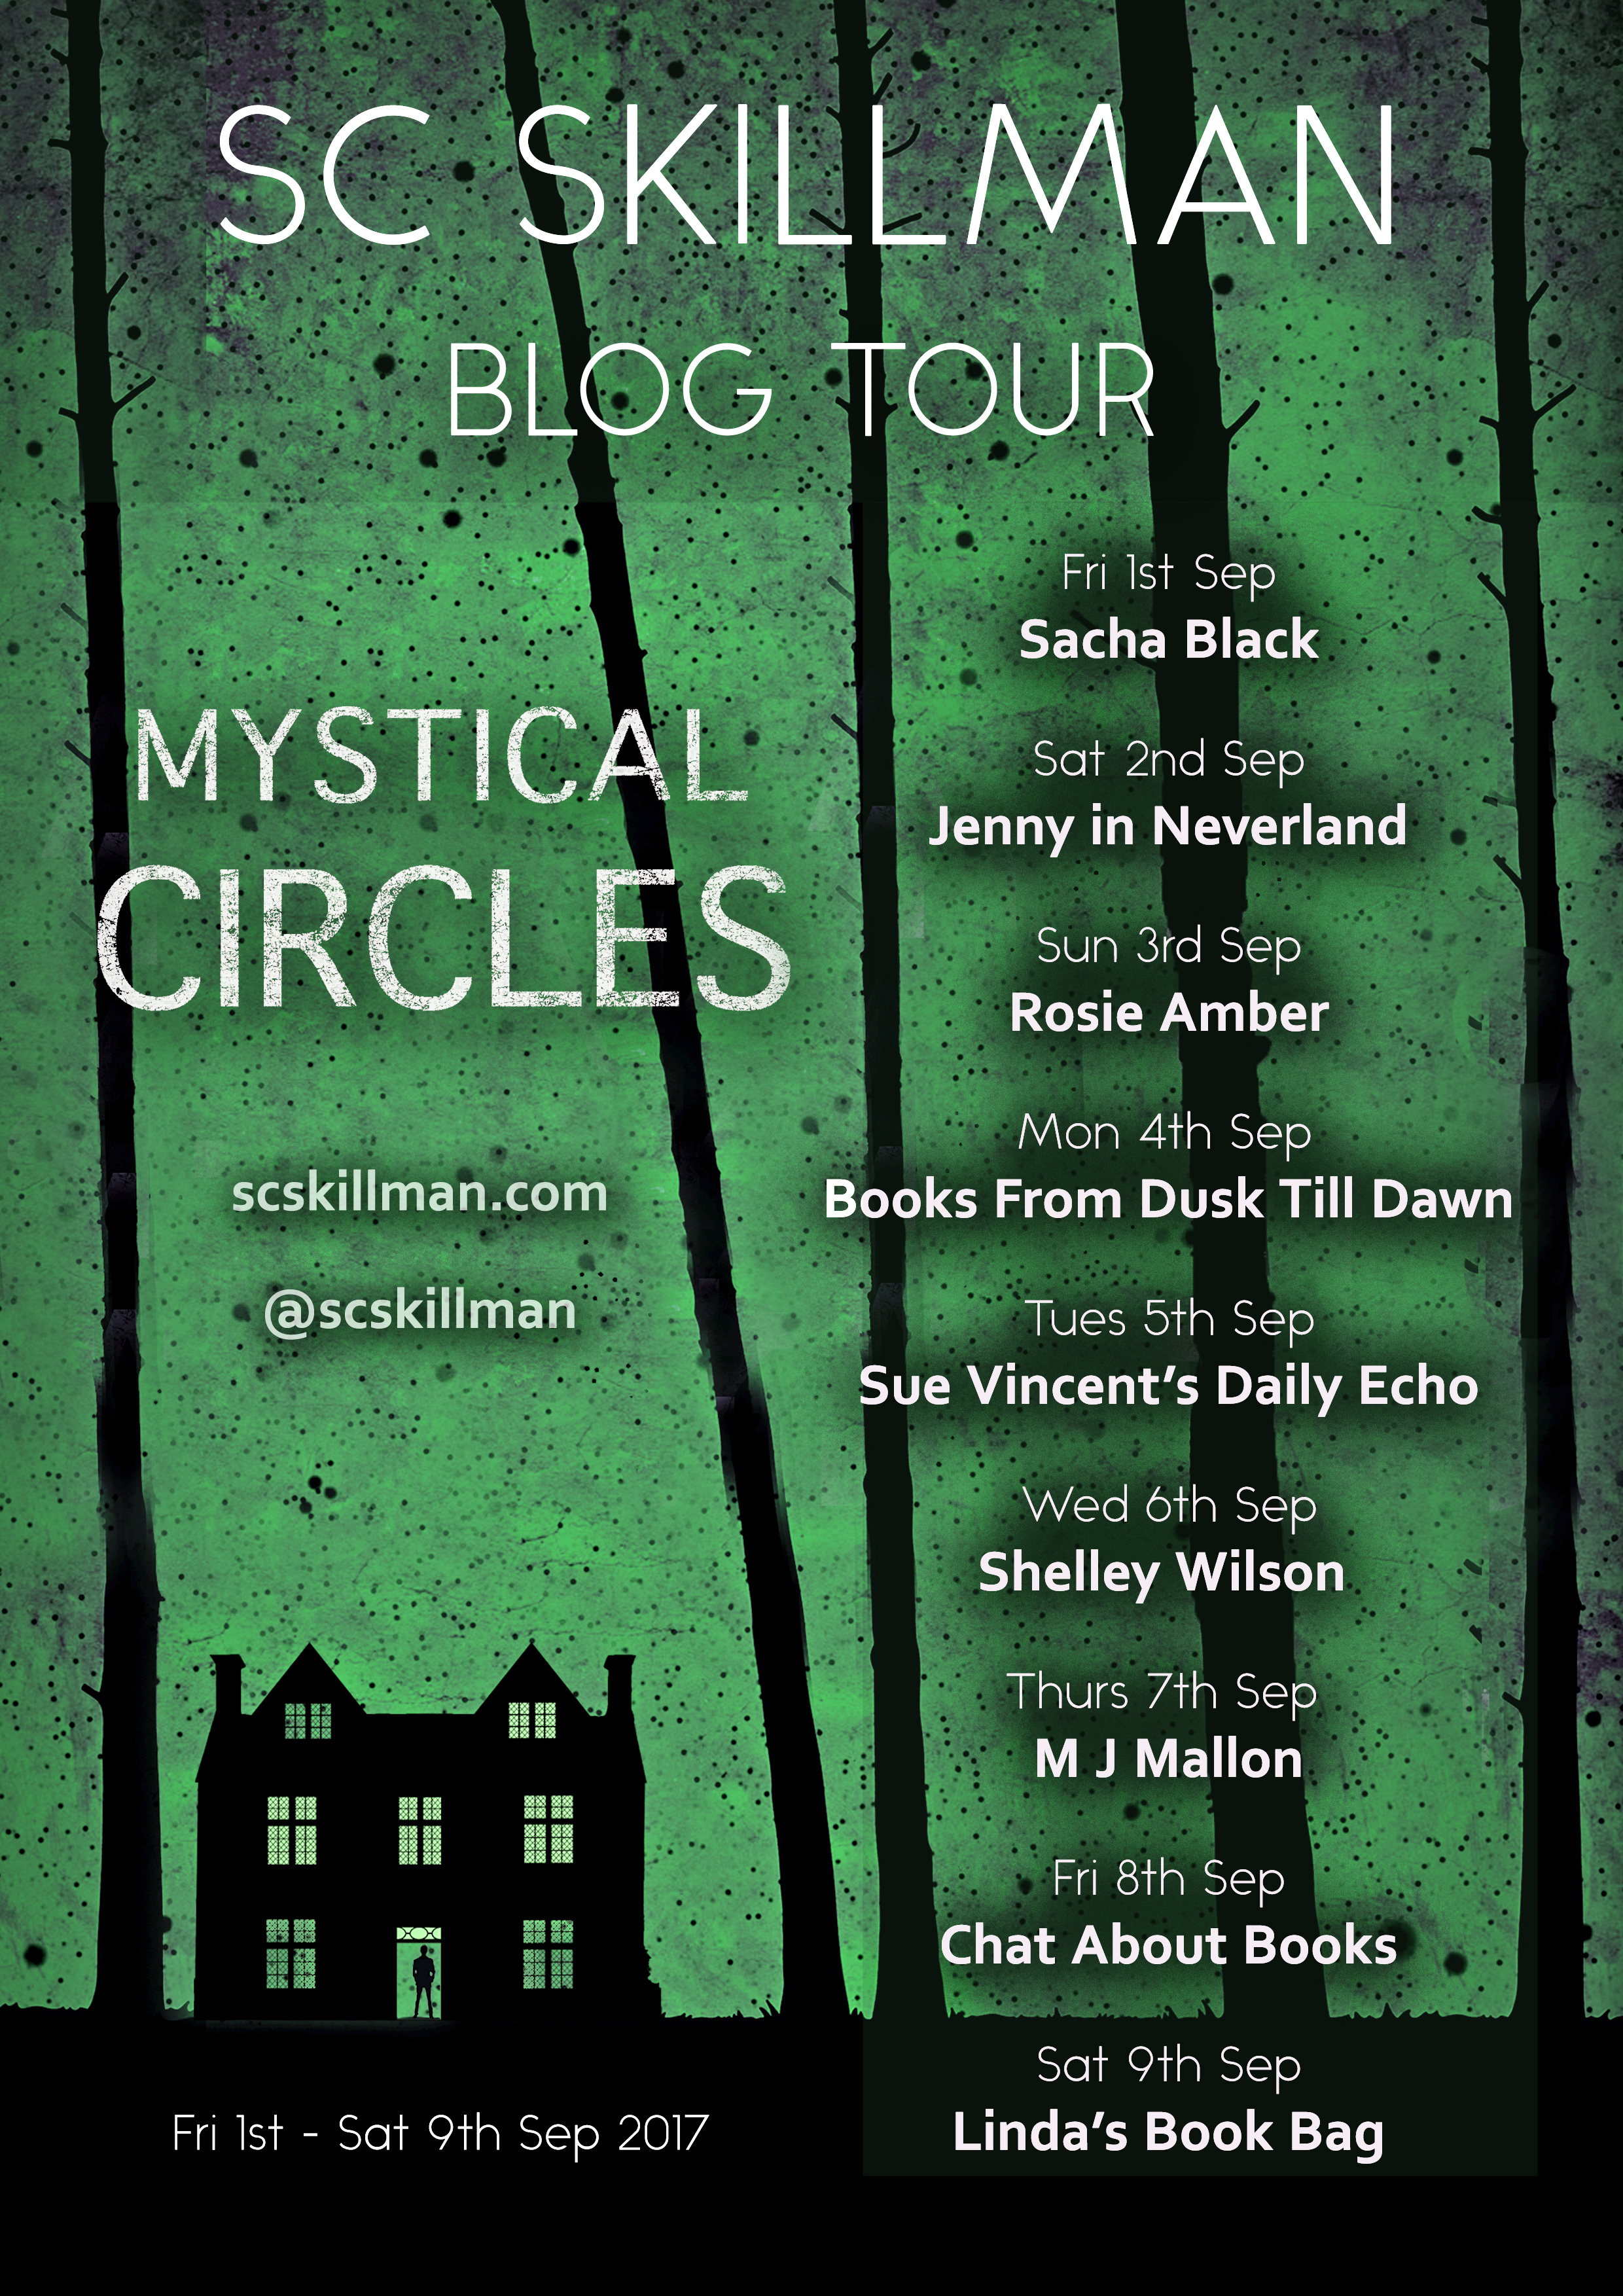 Blog tour ad as at 26 August 2017